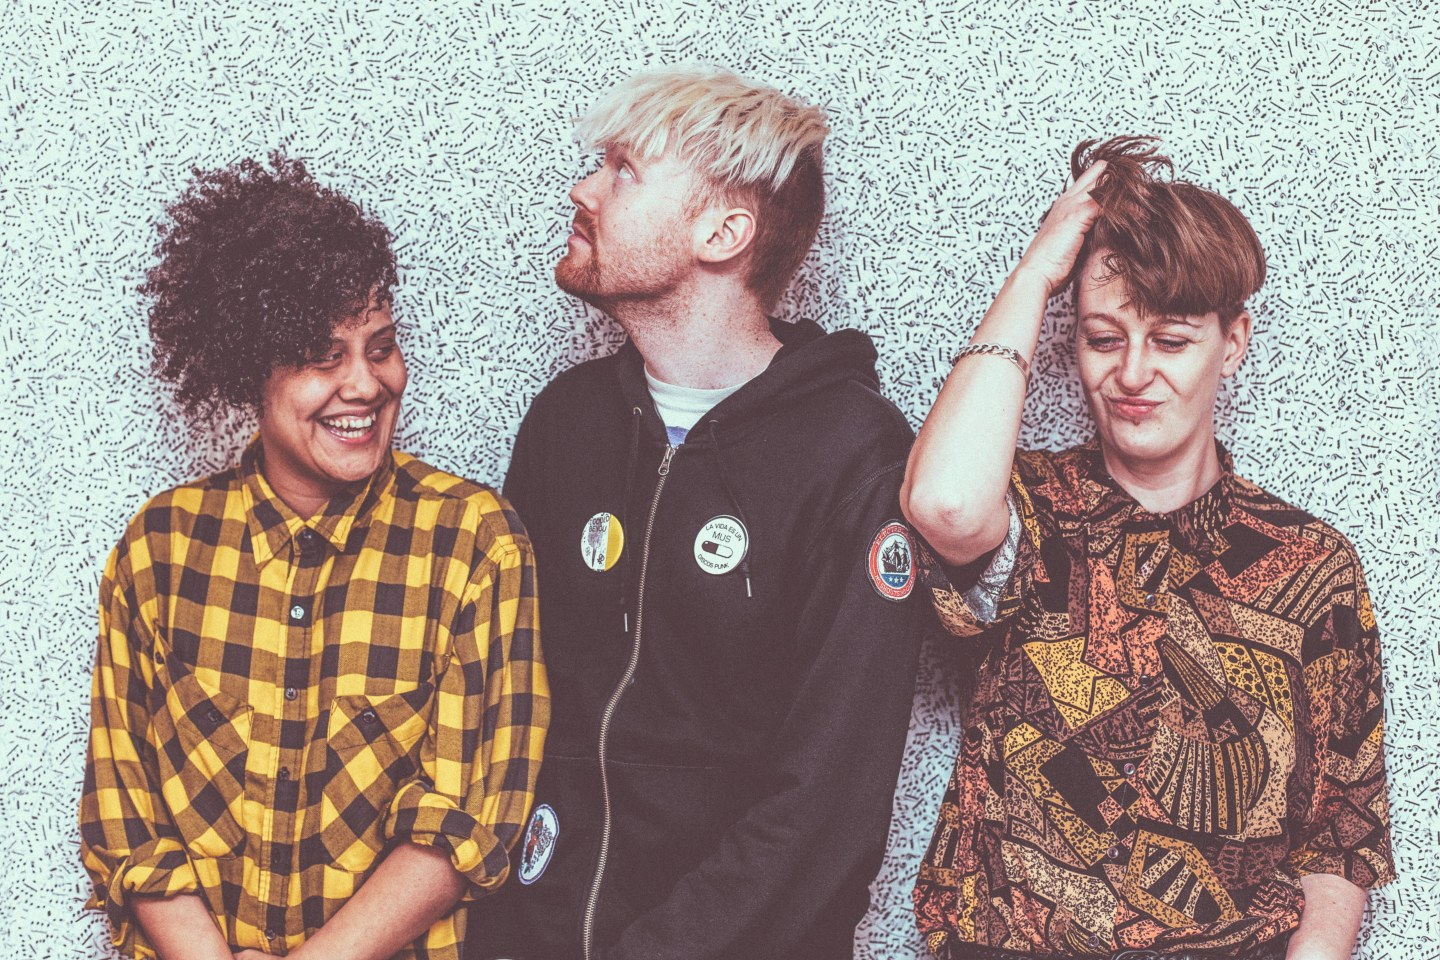 7 Bands Bringing Camp And Queerness Back To Punk